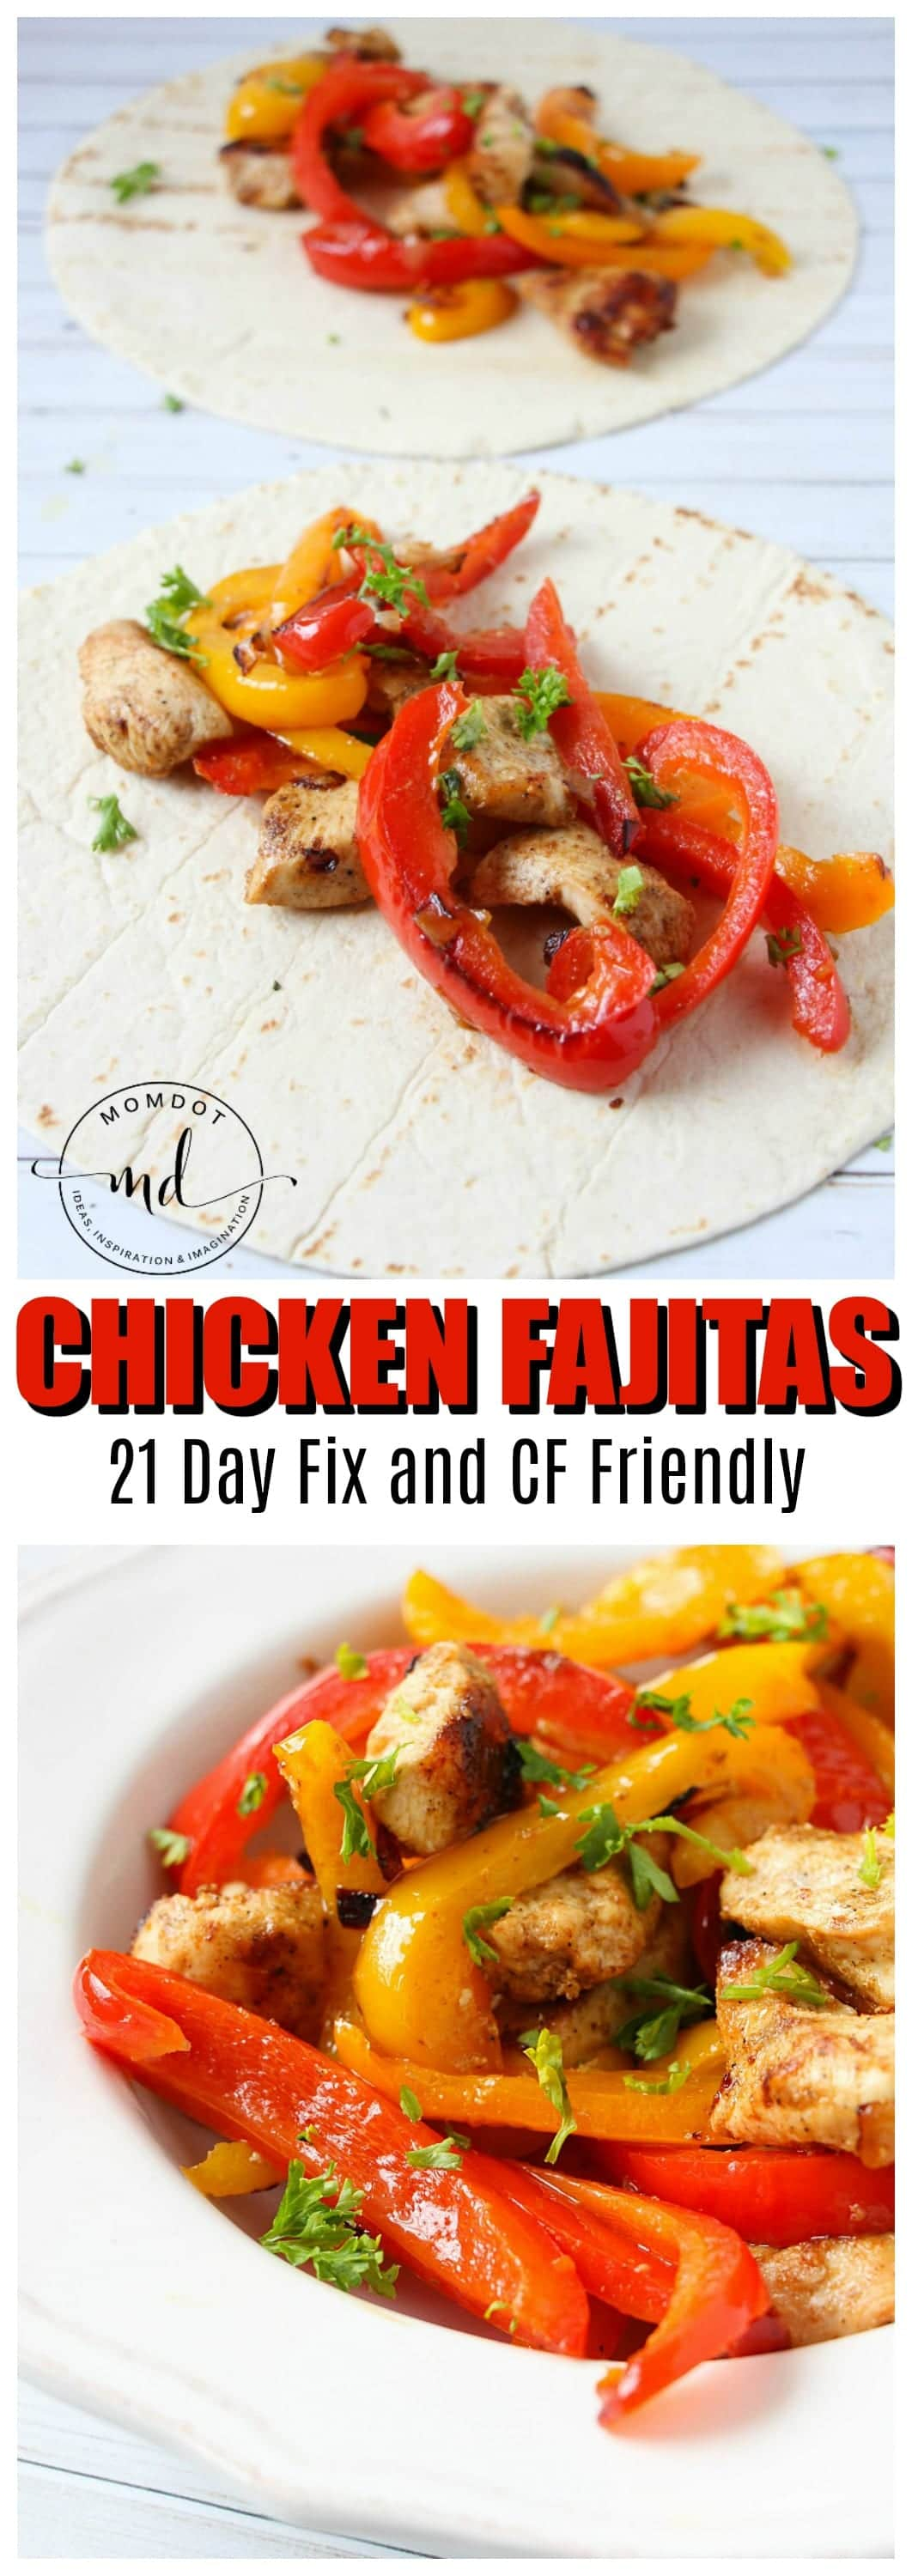 Simple chicken fajita recipe! In under 20 minutes, these perfectly seasoned chickens pair well with veggies for a dinner everyone will love. Without shell, carb free and 21 day <a href=